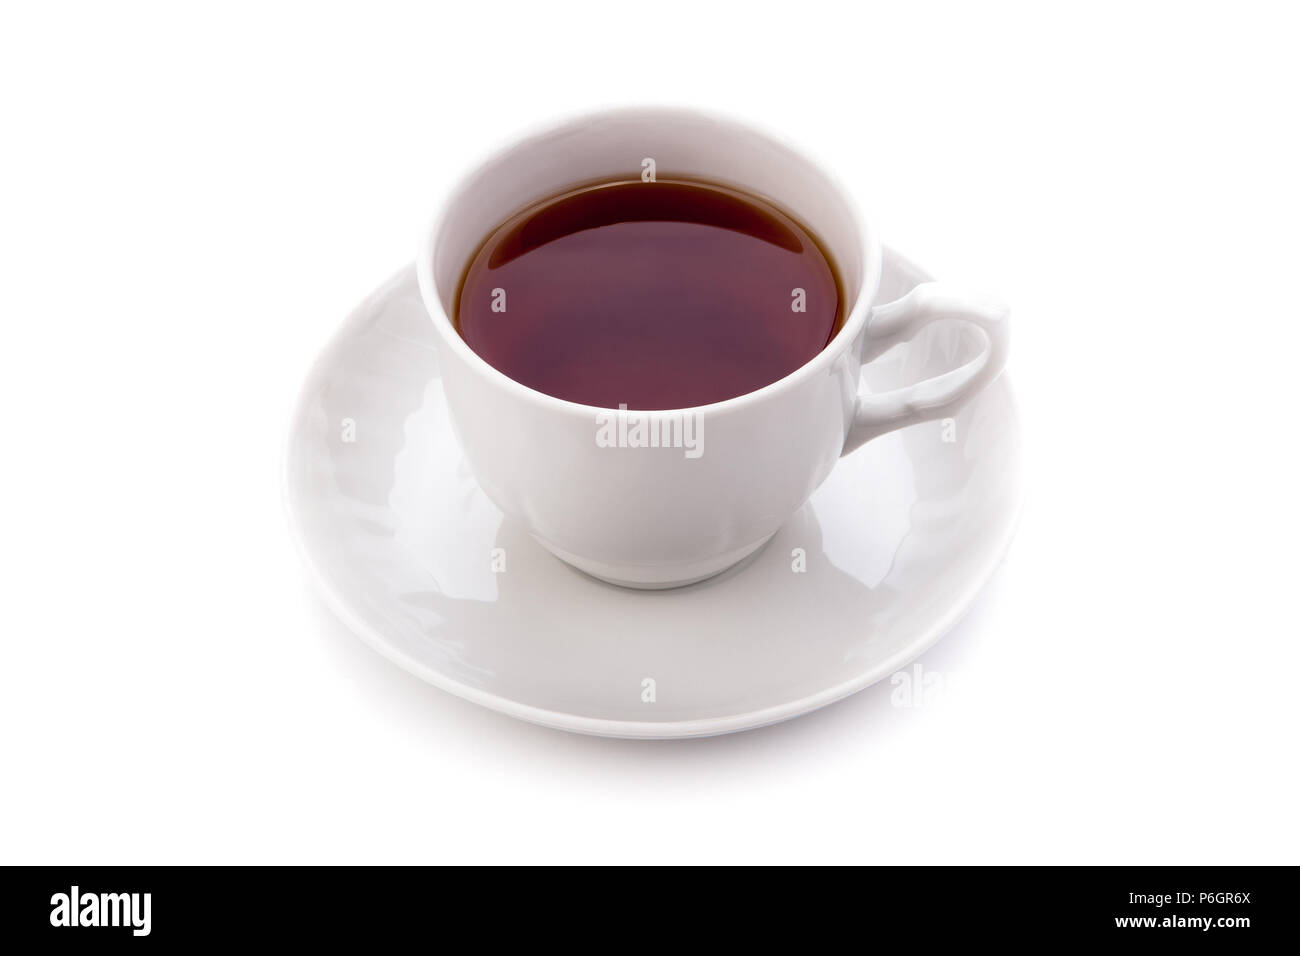 cup of black tea on white background - Stock Image